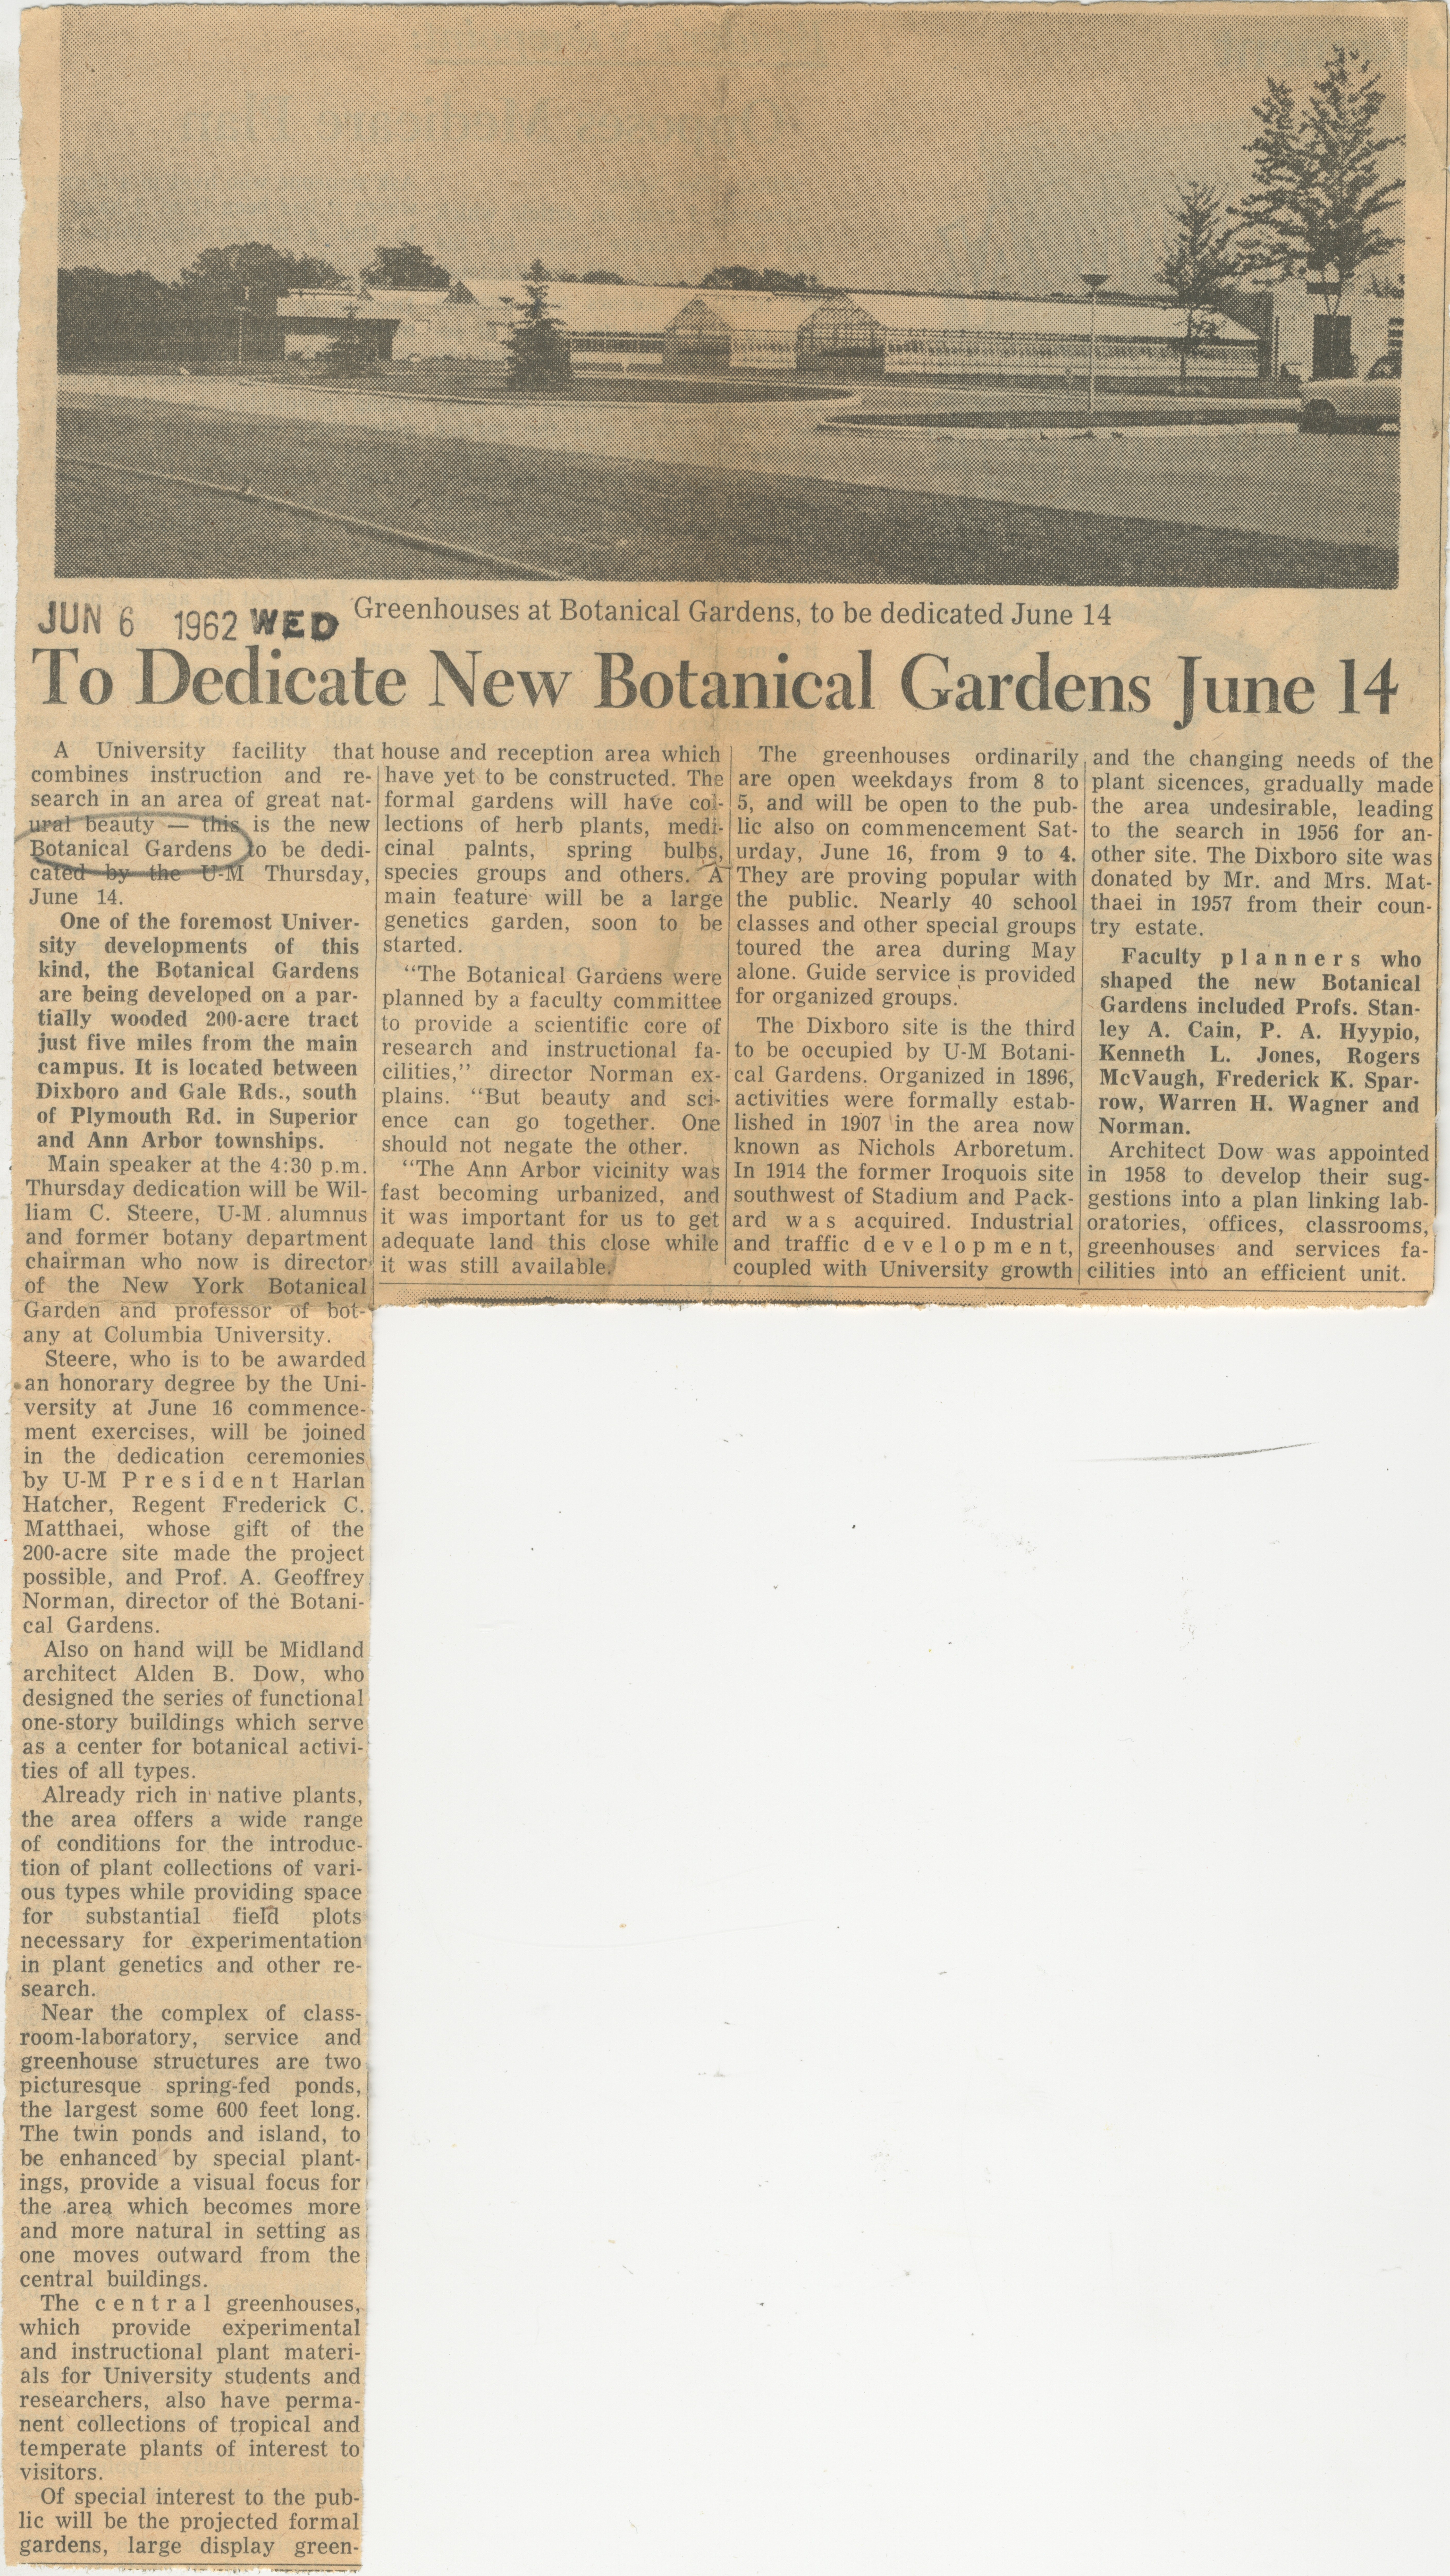 To Dedicate New Botanical Gardens June 14 image